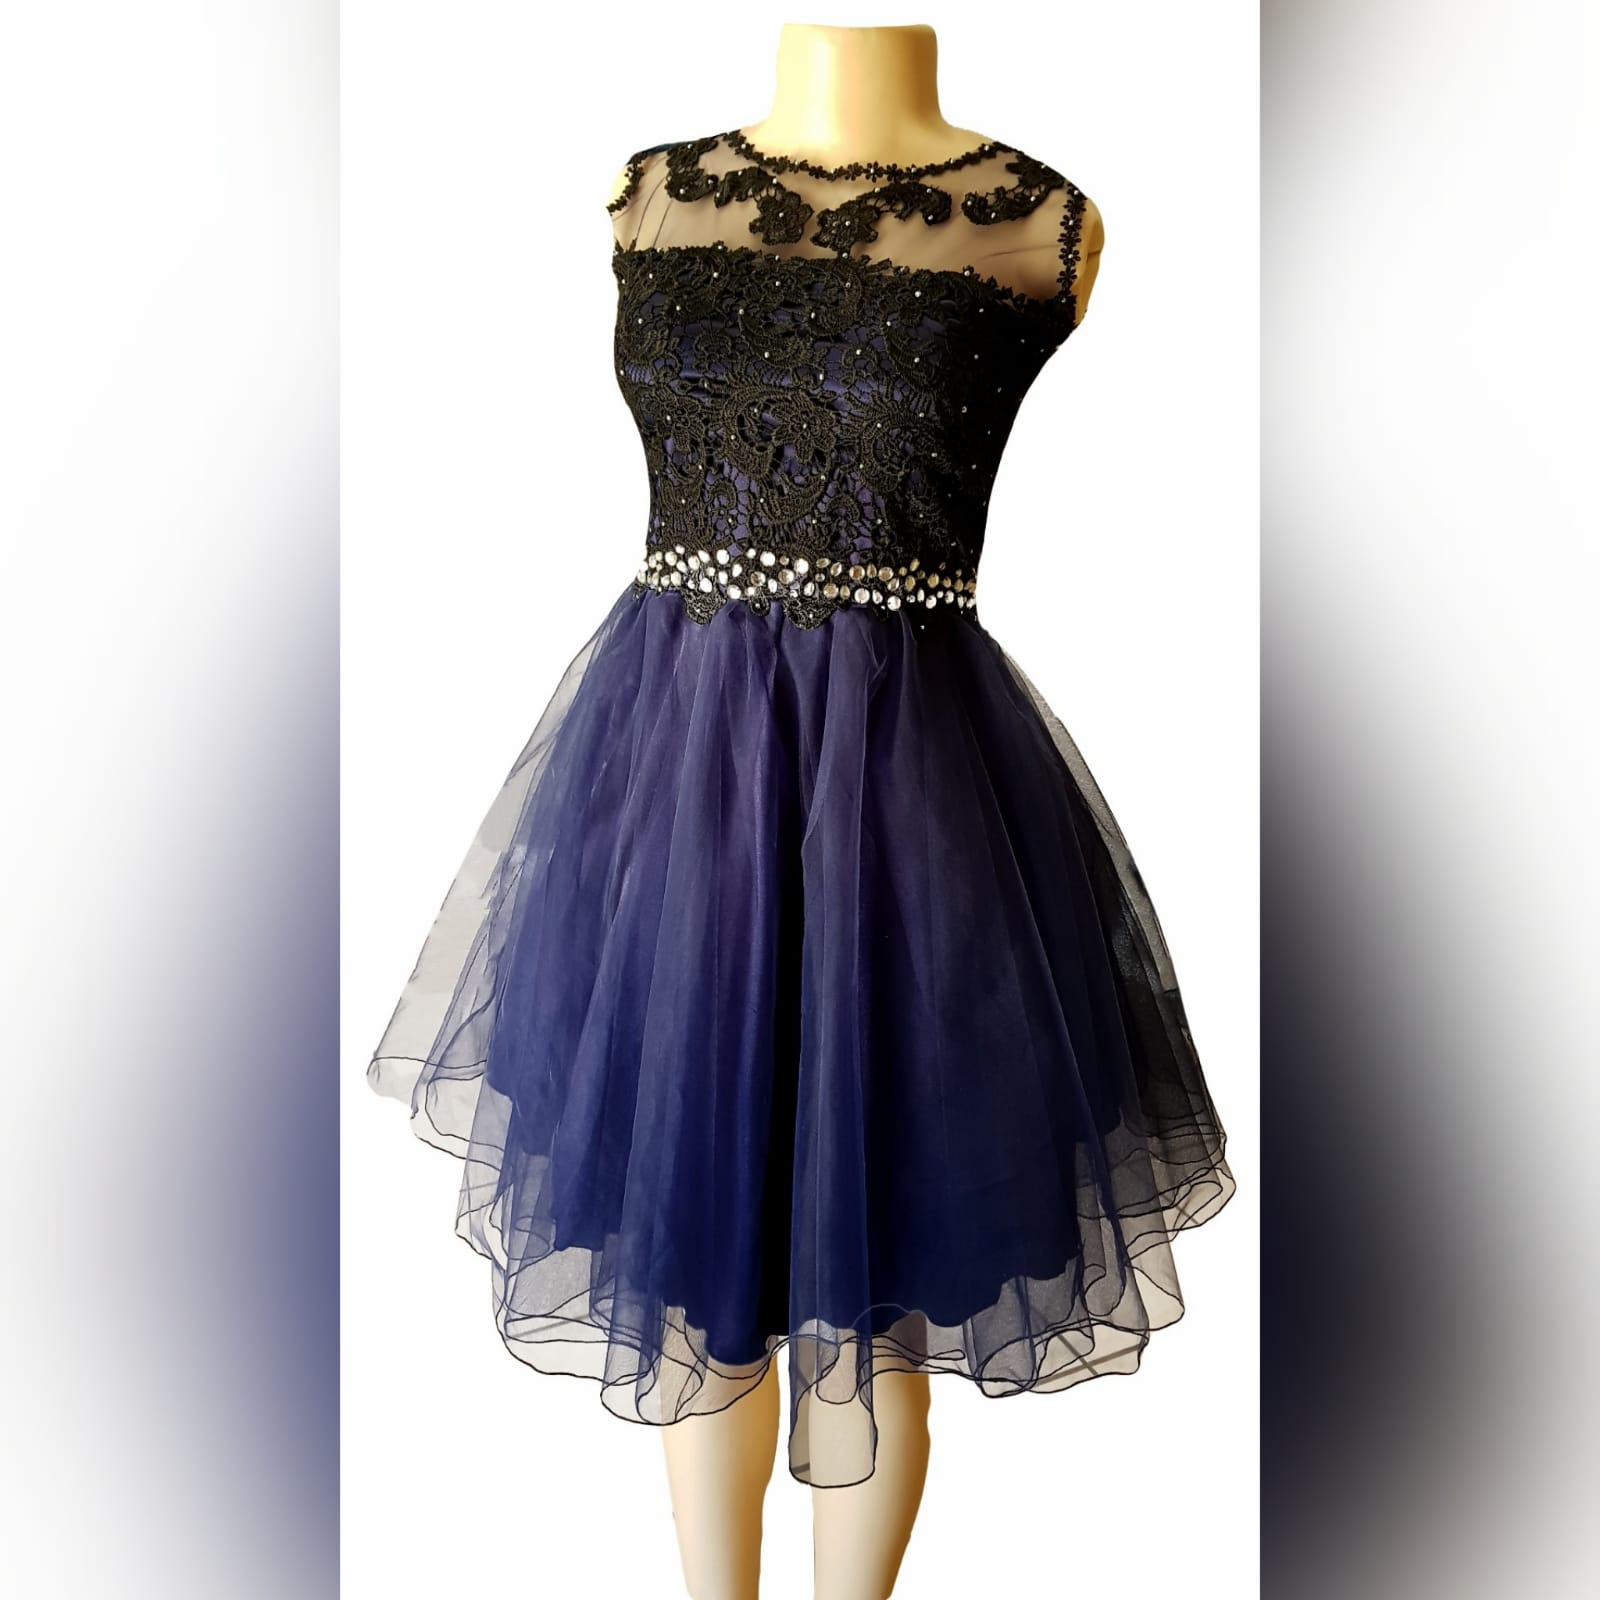 Navy blue short evening dress 2 this adorable navy blue short evening dress was created for a debutante's ball. With an illusion neckline detailed with lace to add sophistication to the design, scattered silver beads on the lace. A silver beaded belt effect to enhance the waistline, with a cute knee-length tulle skirt